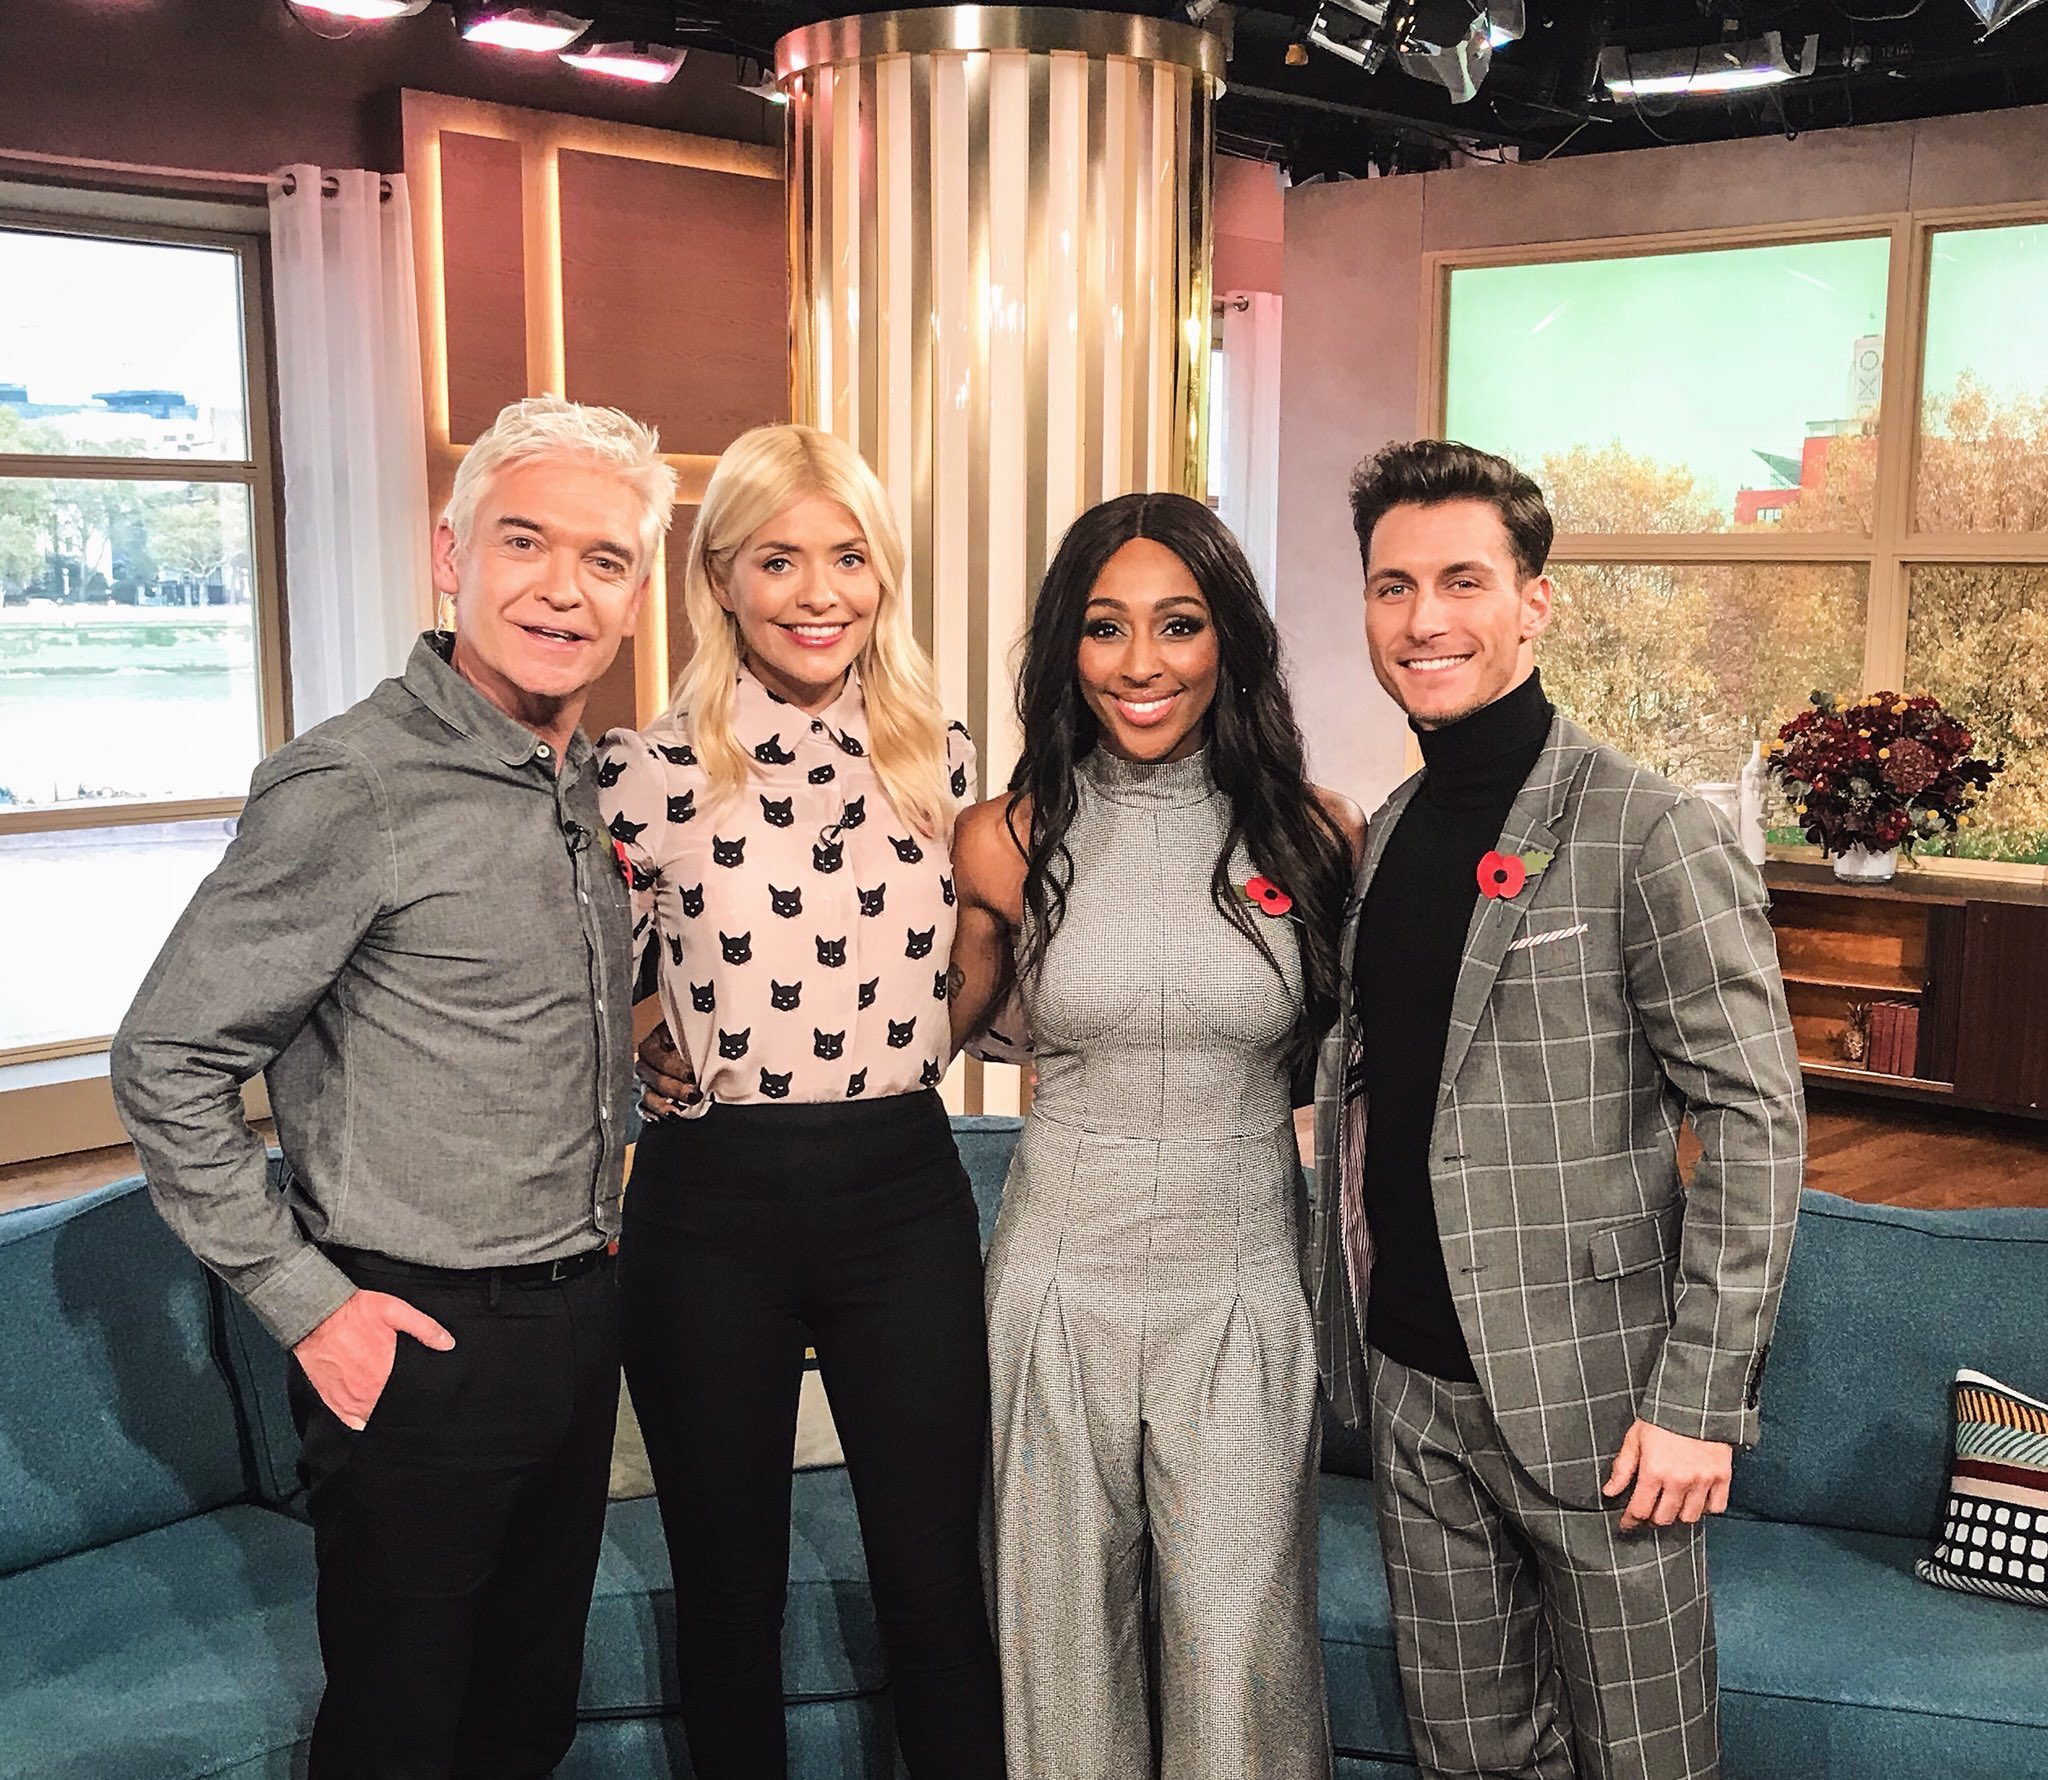 So much fun on @thismorning - lovely to see you guys @hollywills & @Schofe - thank you for having us xx https://t.co/NkGa9EanCy